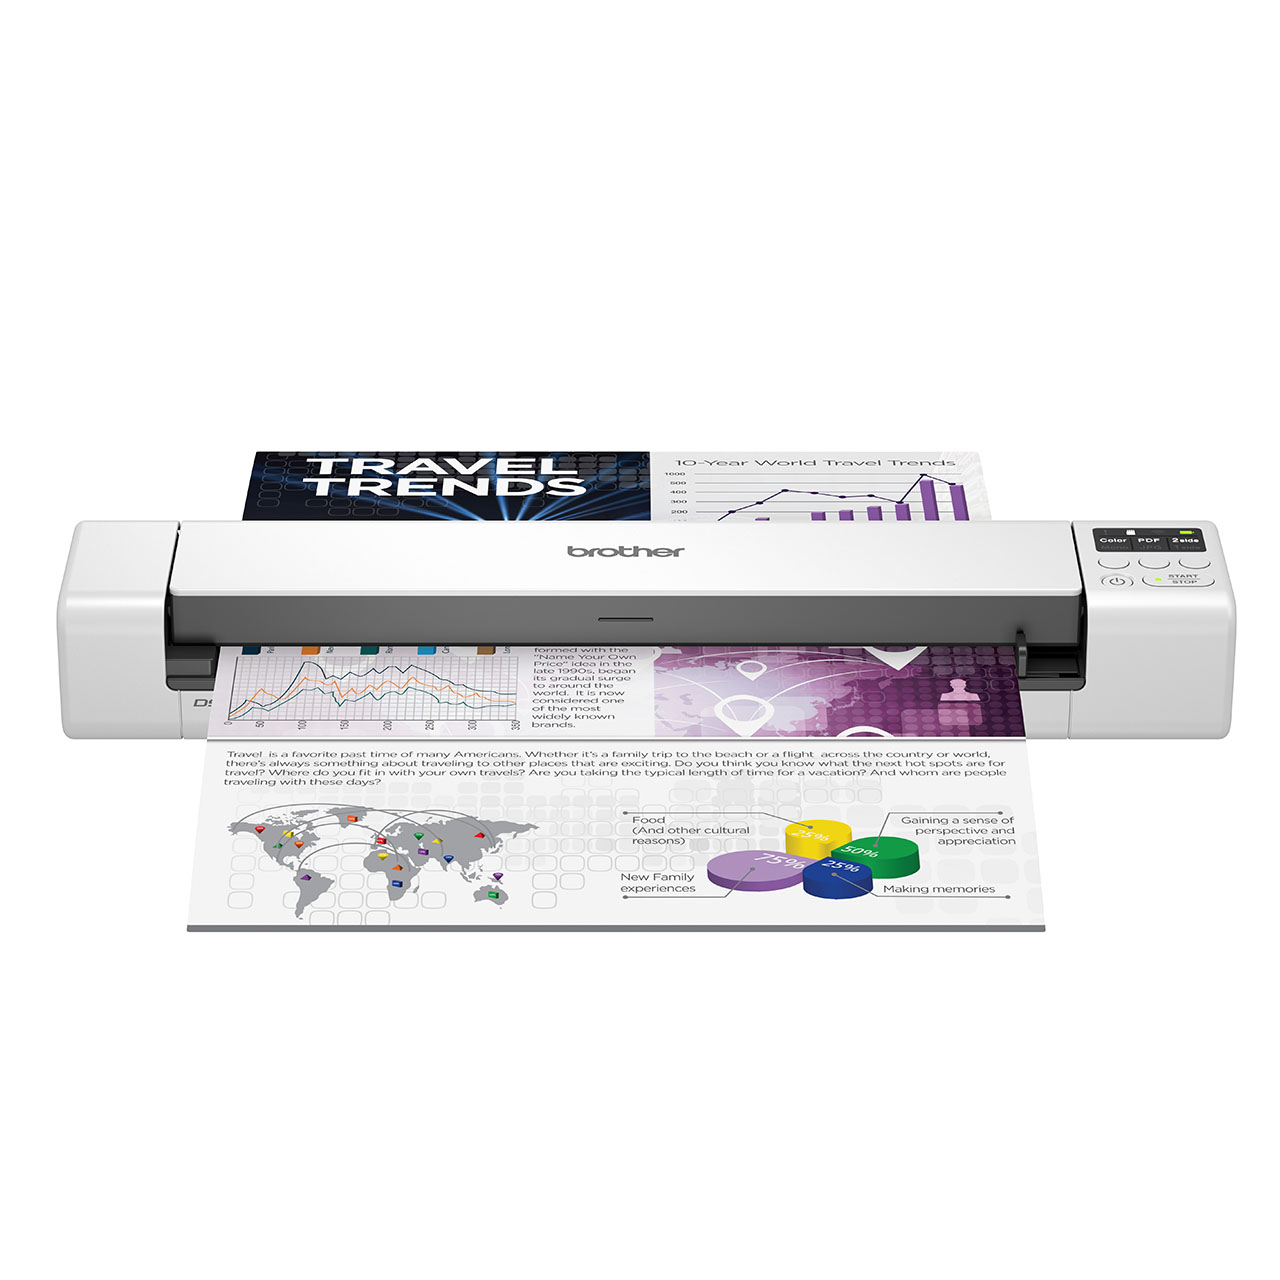 Brother DS-940DW Portable Document Scanner